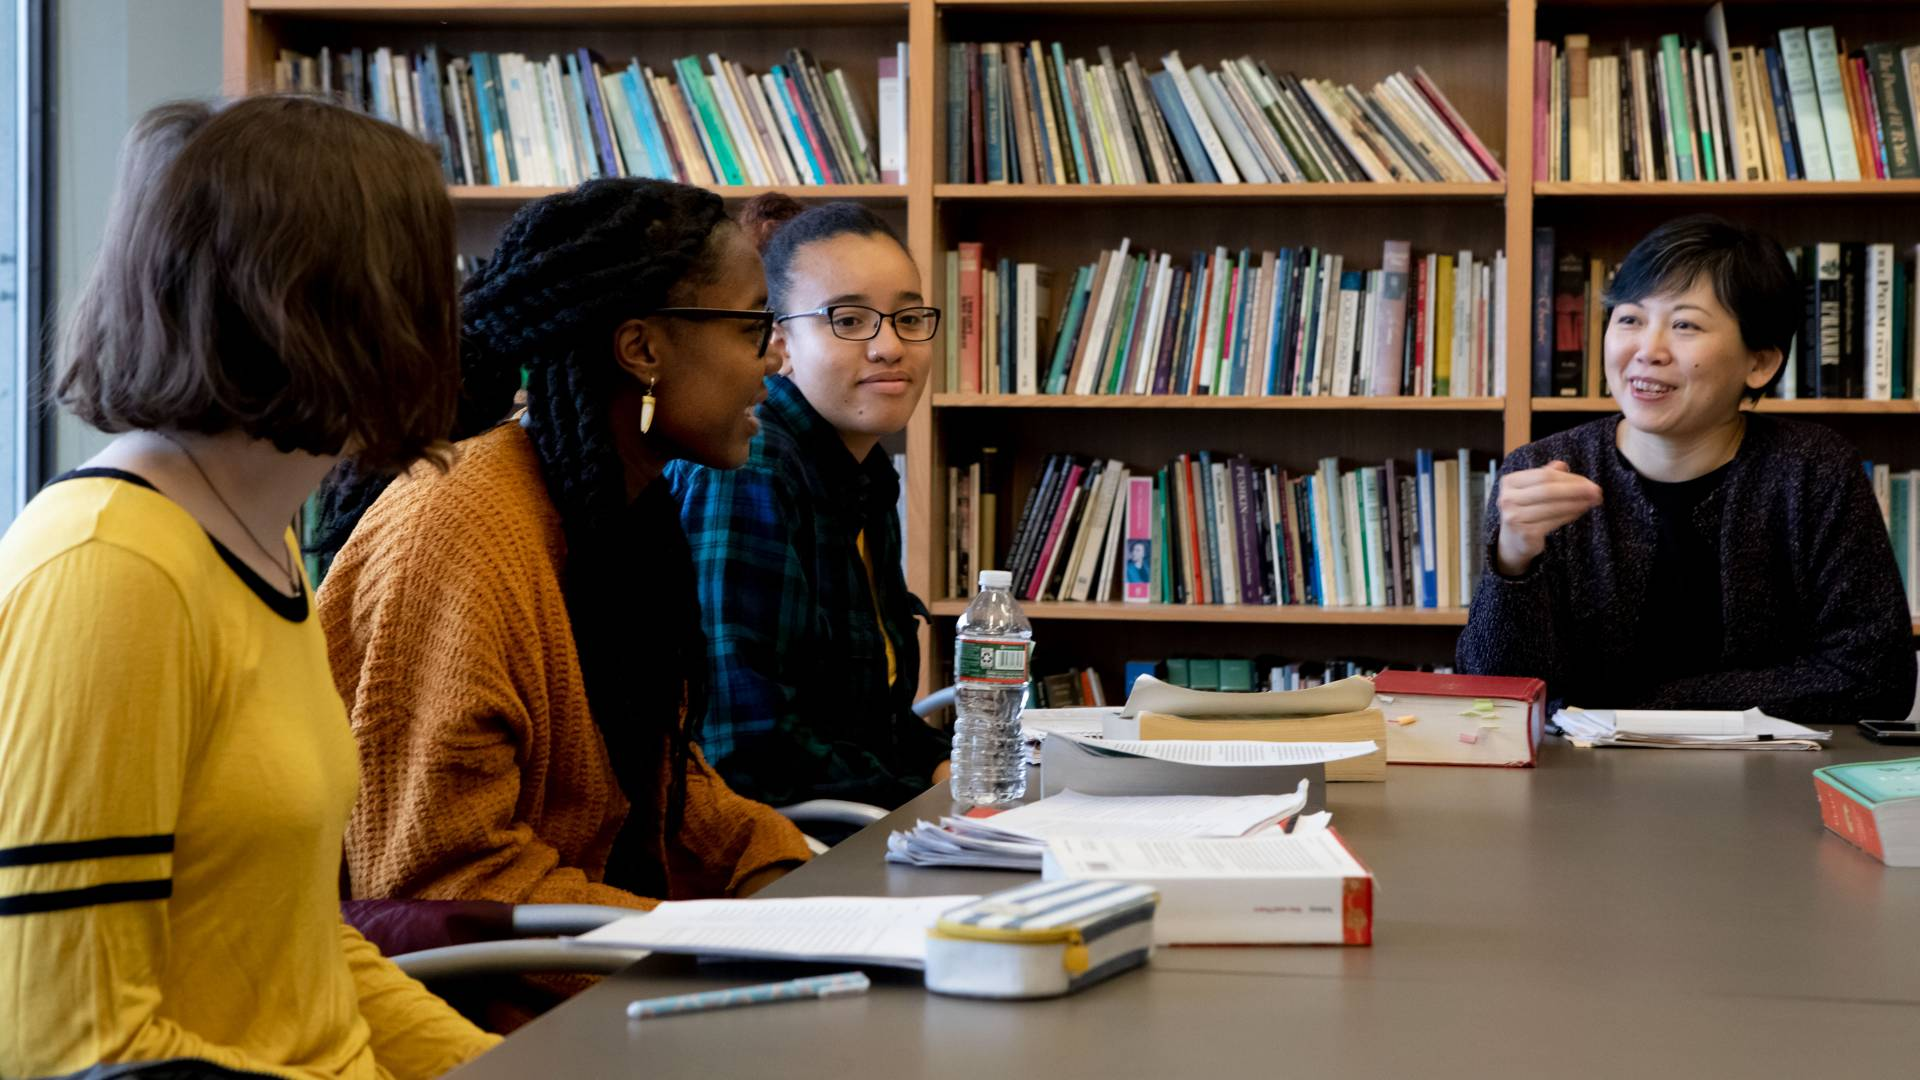 Yiyun Li engaging with three students in creative writing class